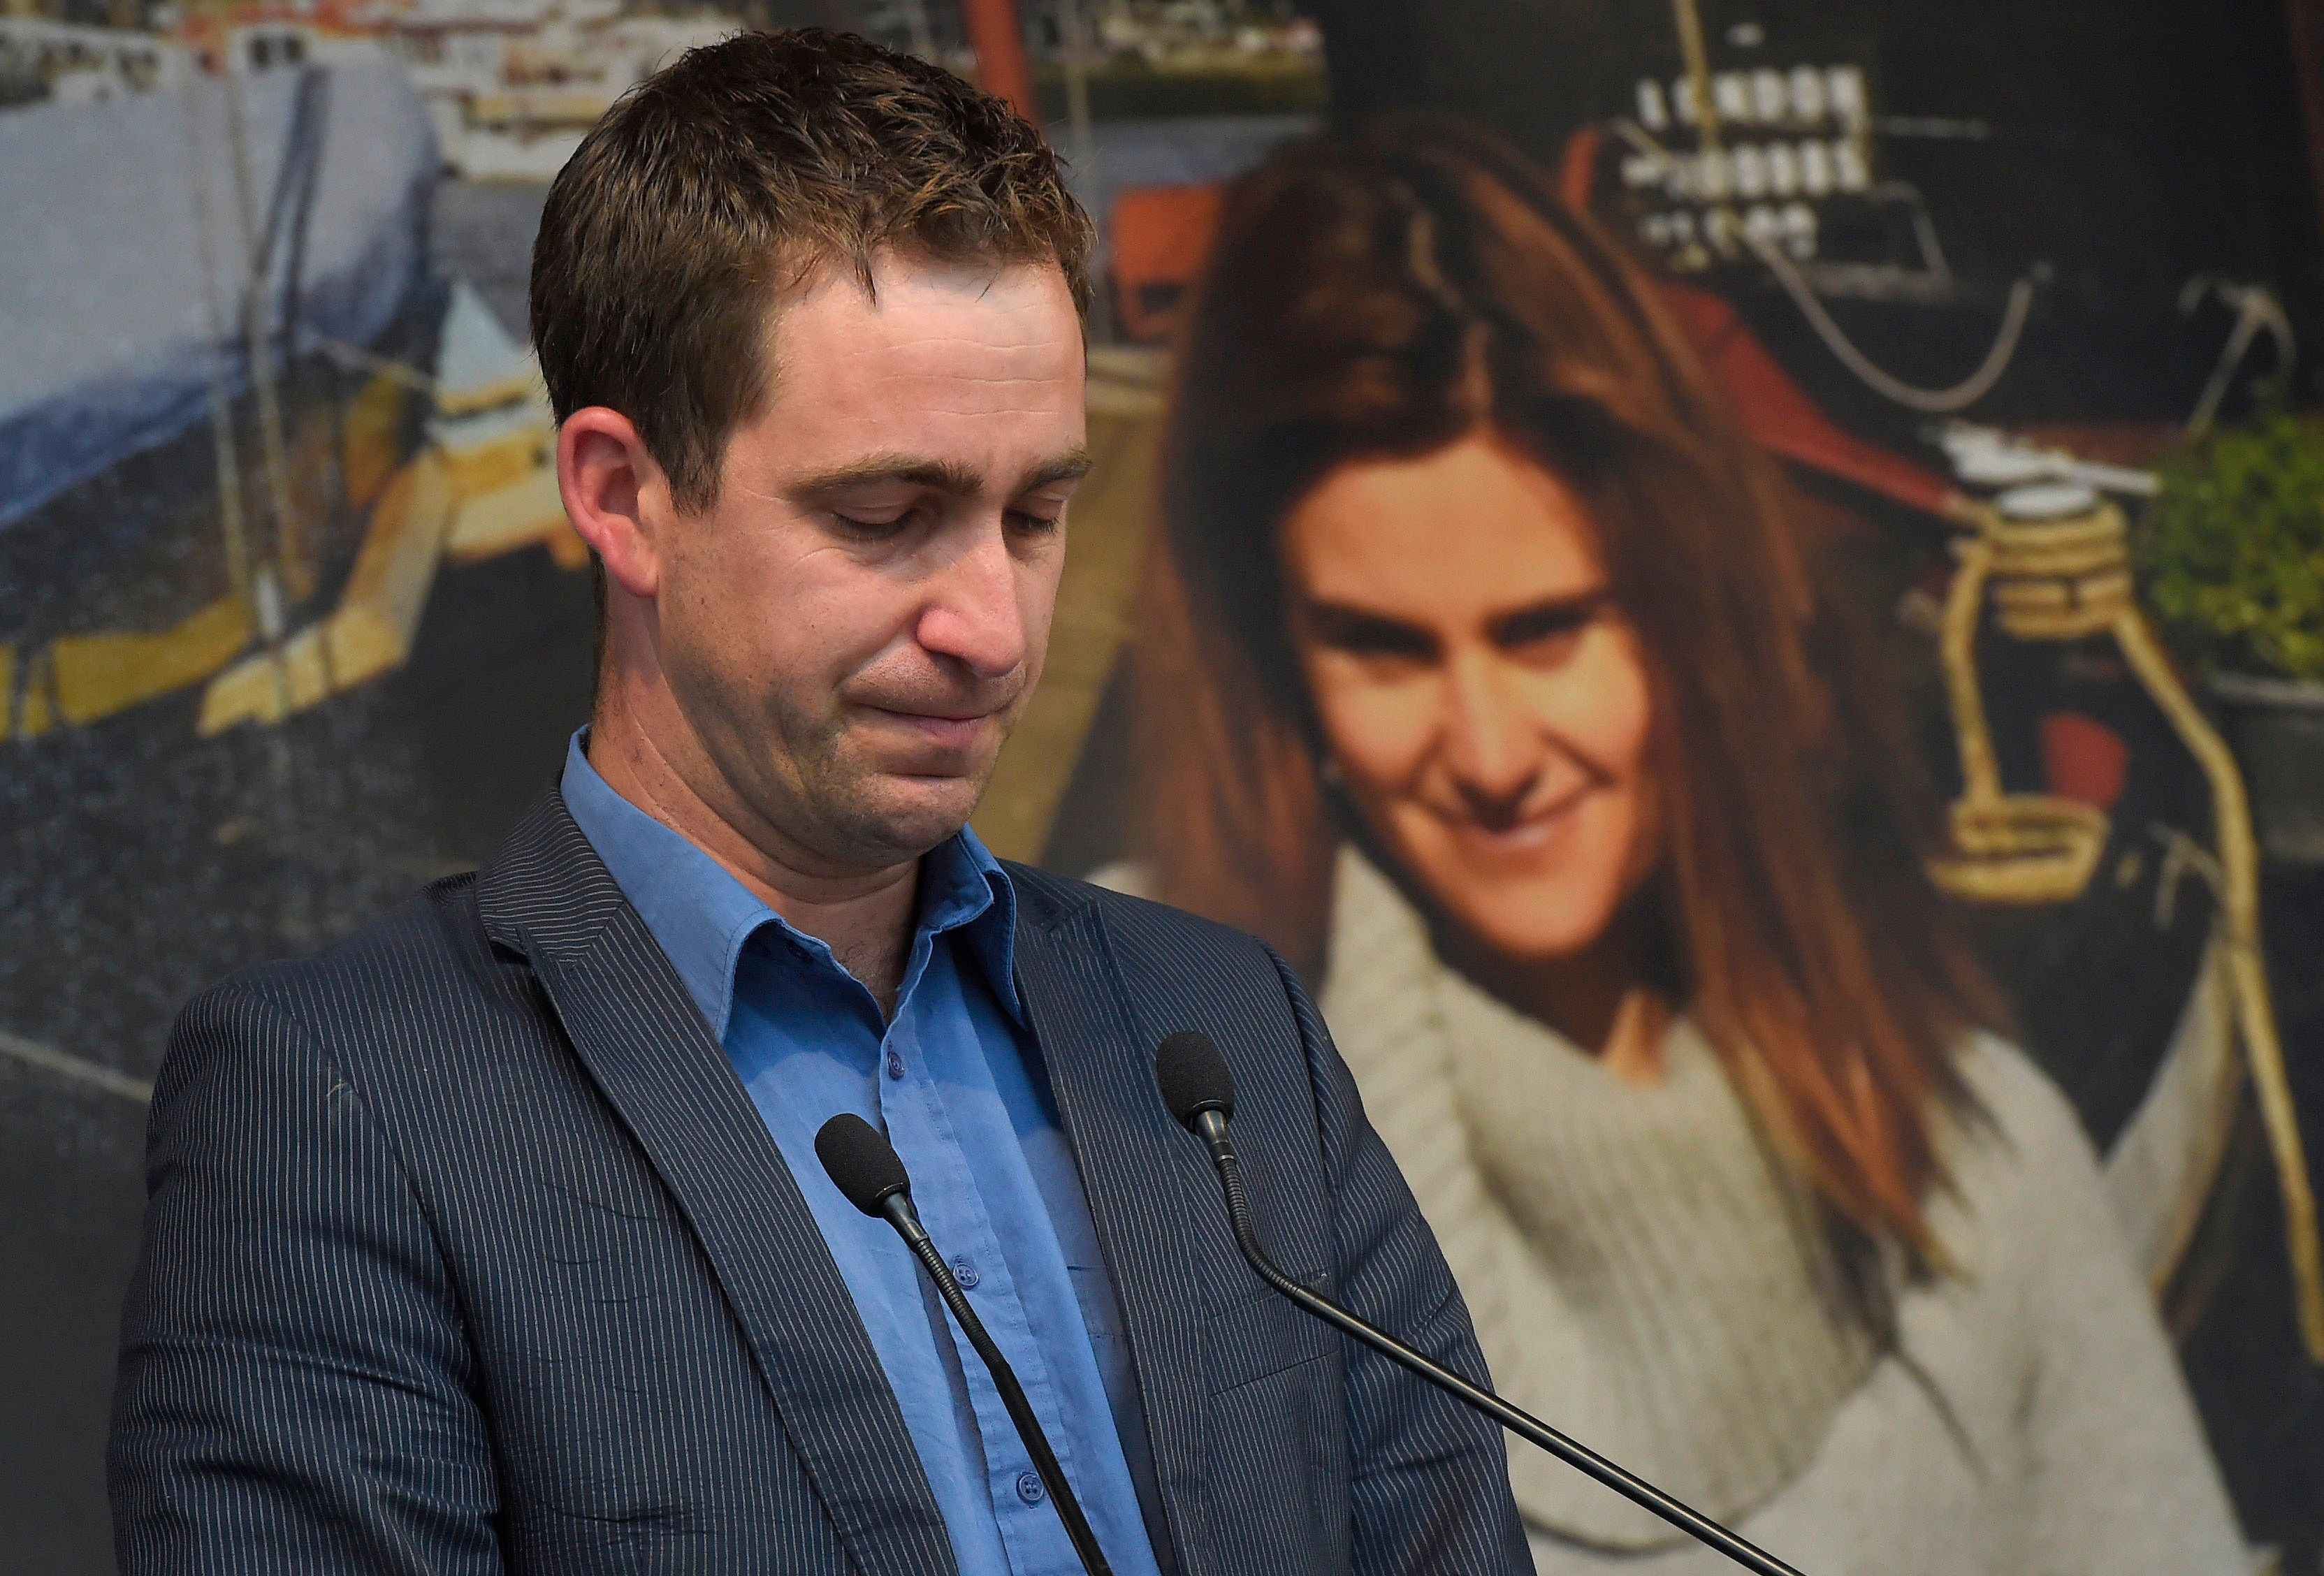 Husband Of Murdered British MP Jo Cox, Warns Of The Rise Of